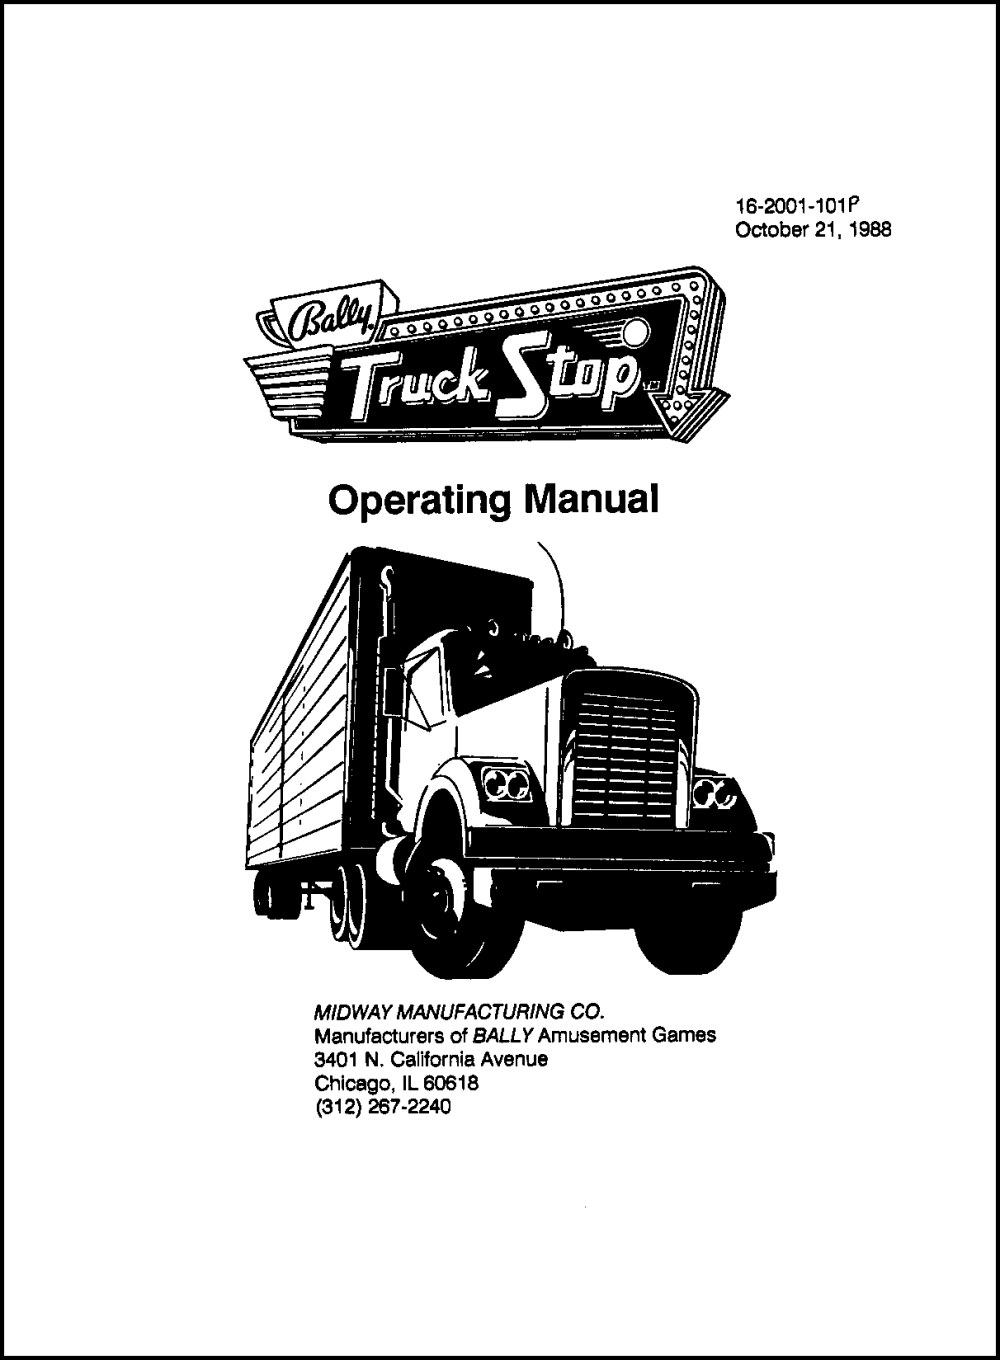 medium resolution of cover of my 1988 manual for truck stop first bally game after williams bought bally